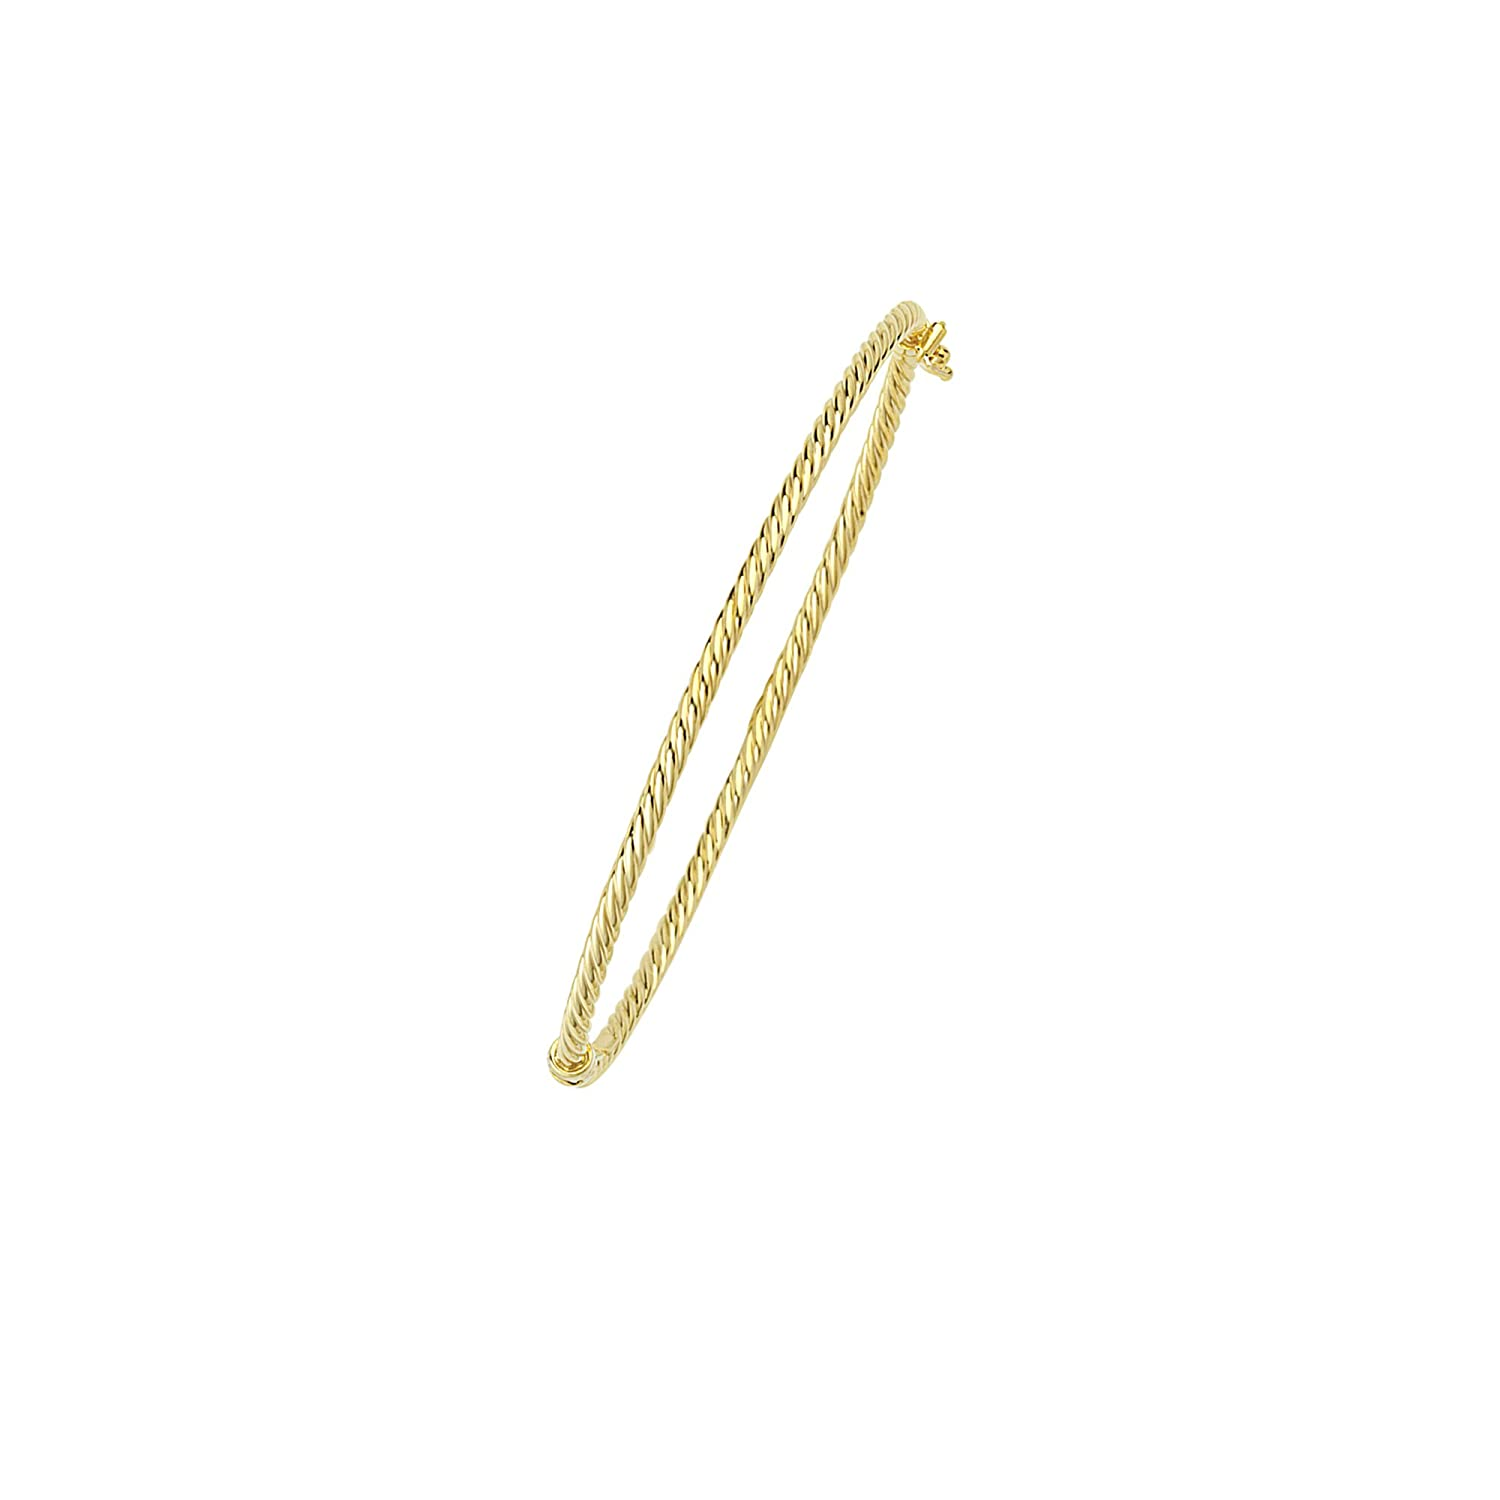 14K Gold Bangle 7,25 Wrist Size Bangle